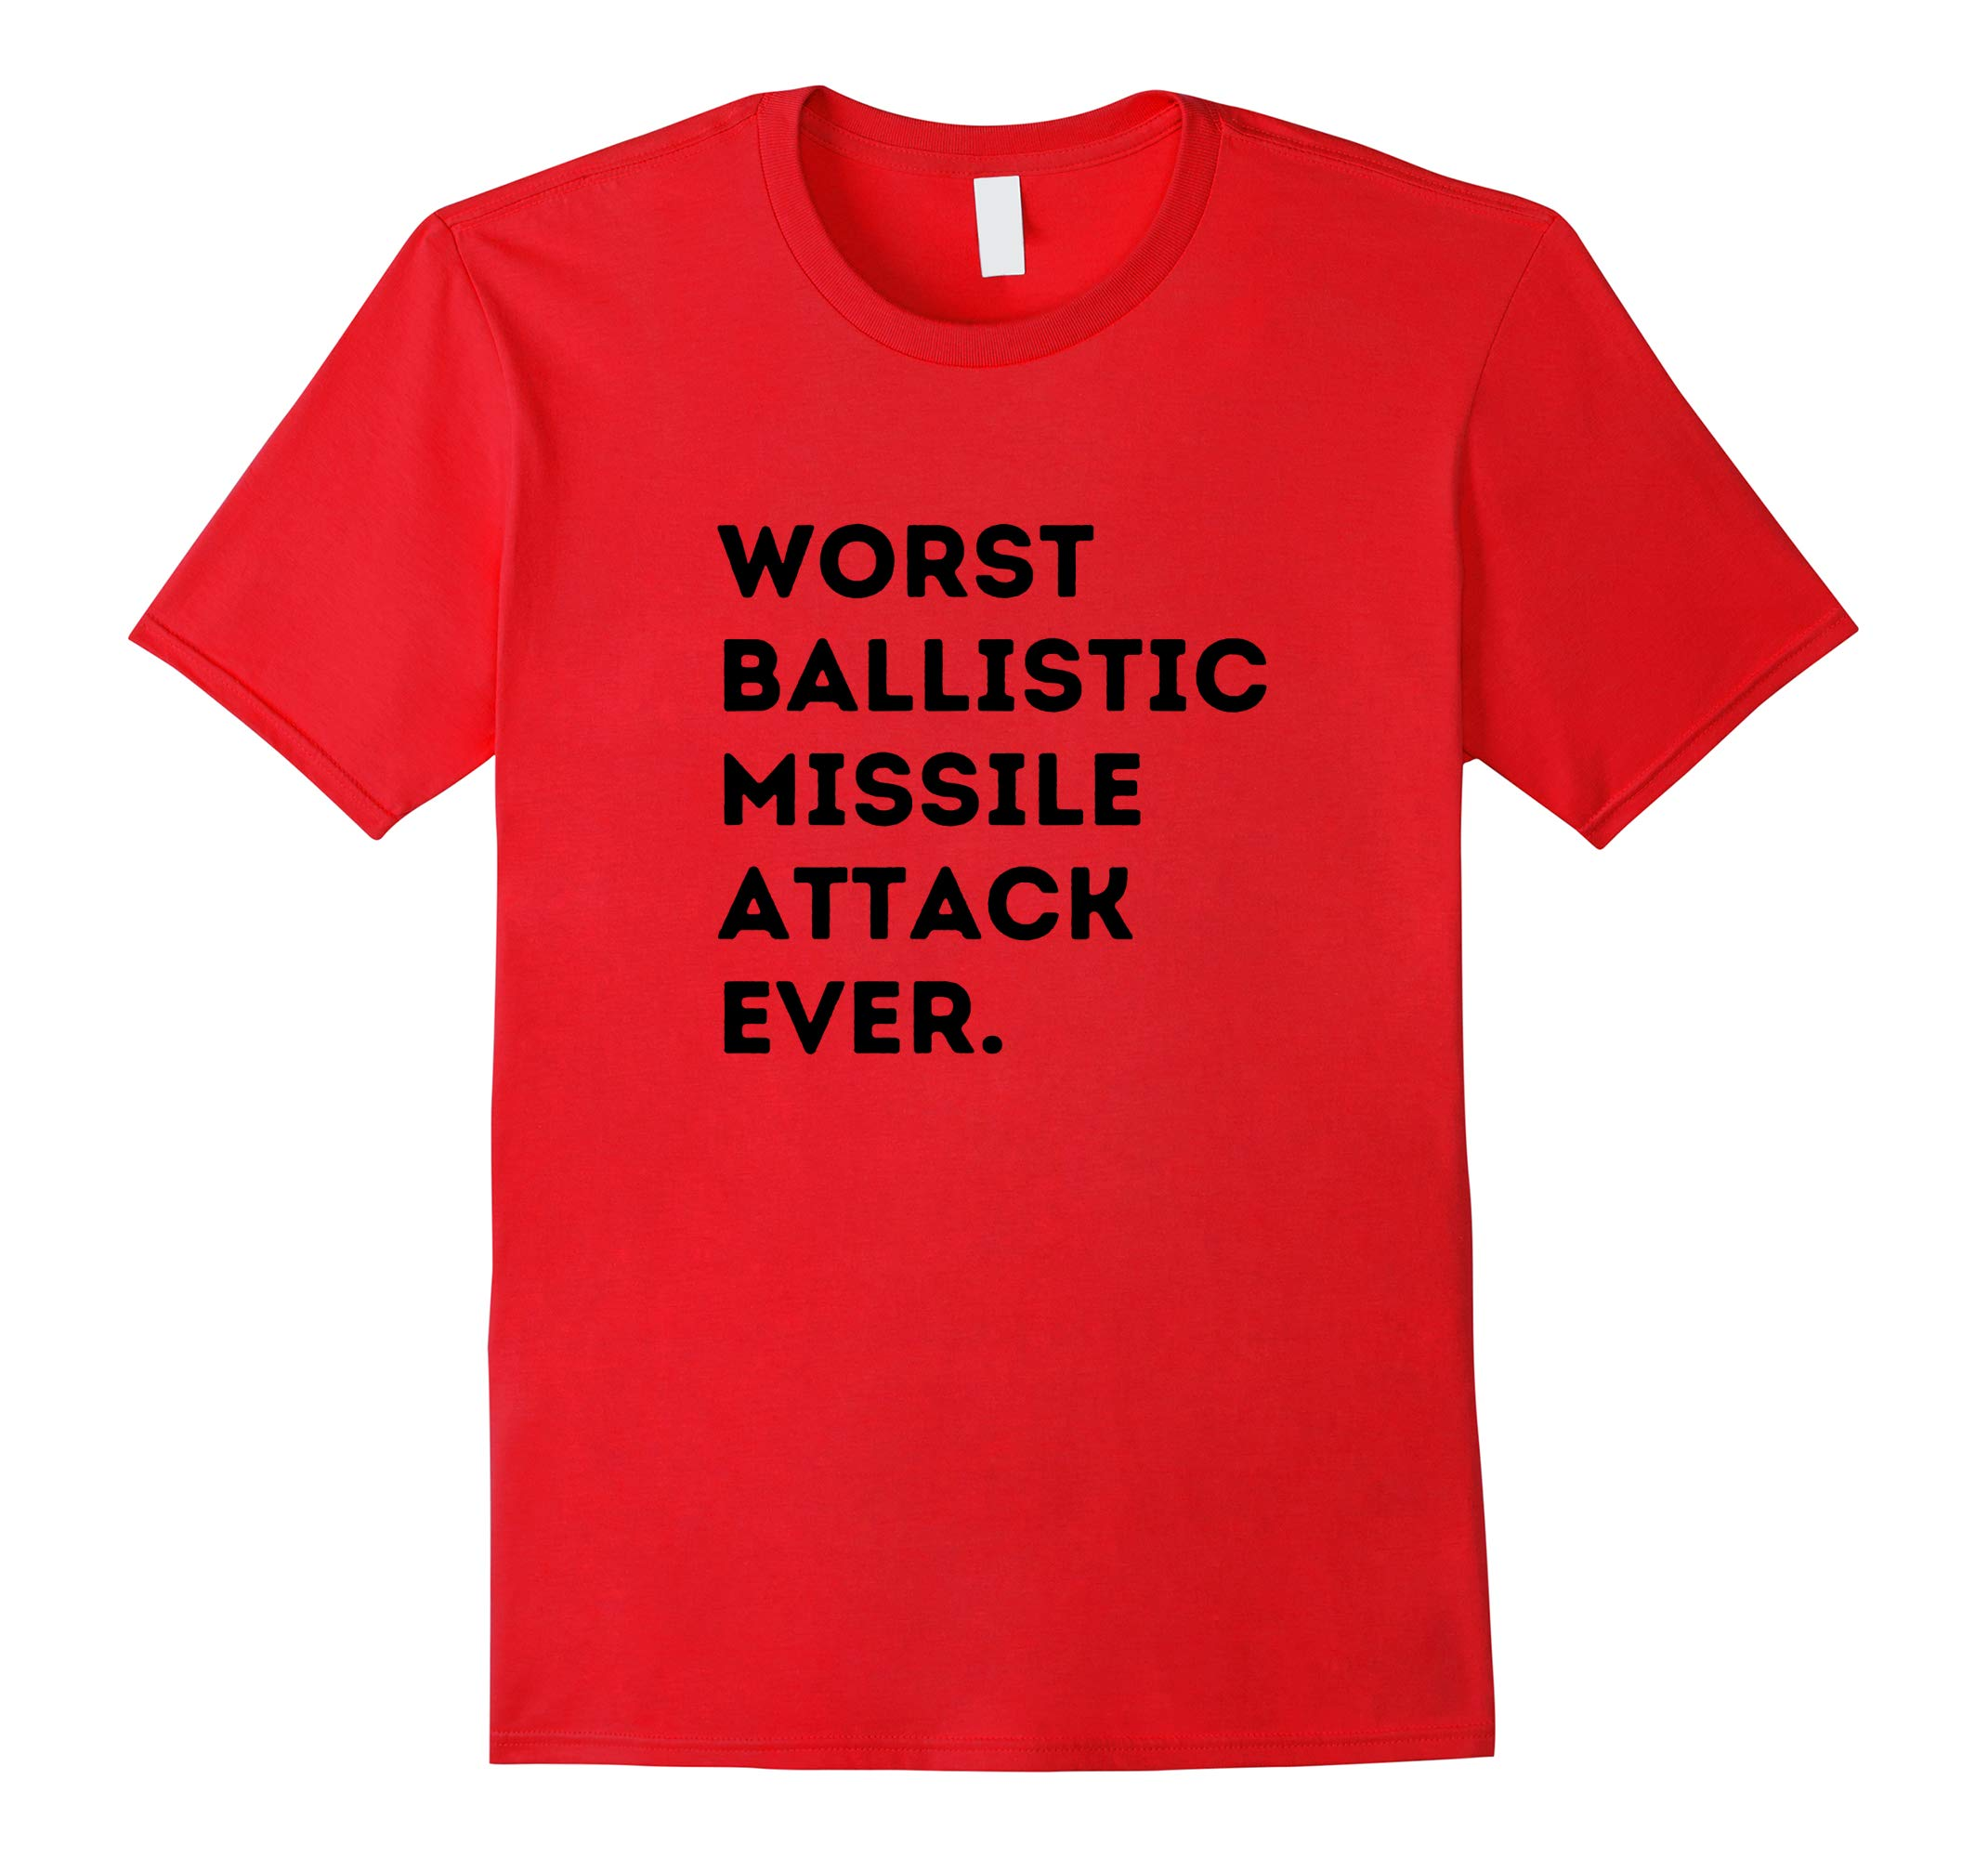 Worst Ballistic Missile Attack Ever T-shirt Hawaii Hoax-RT